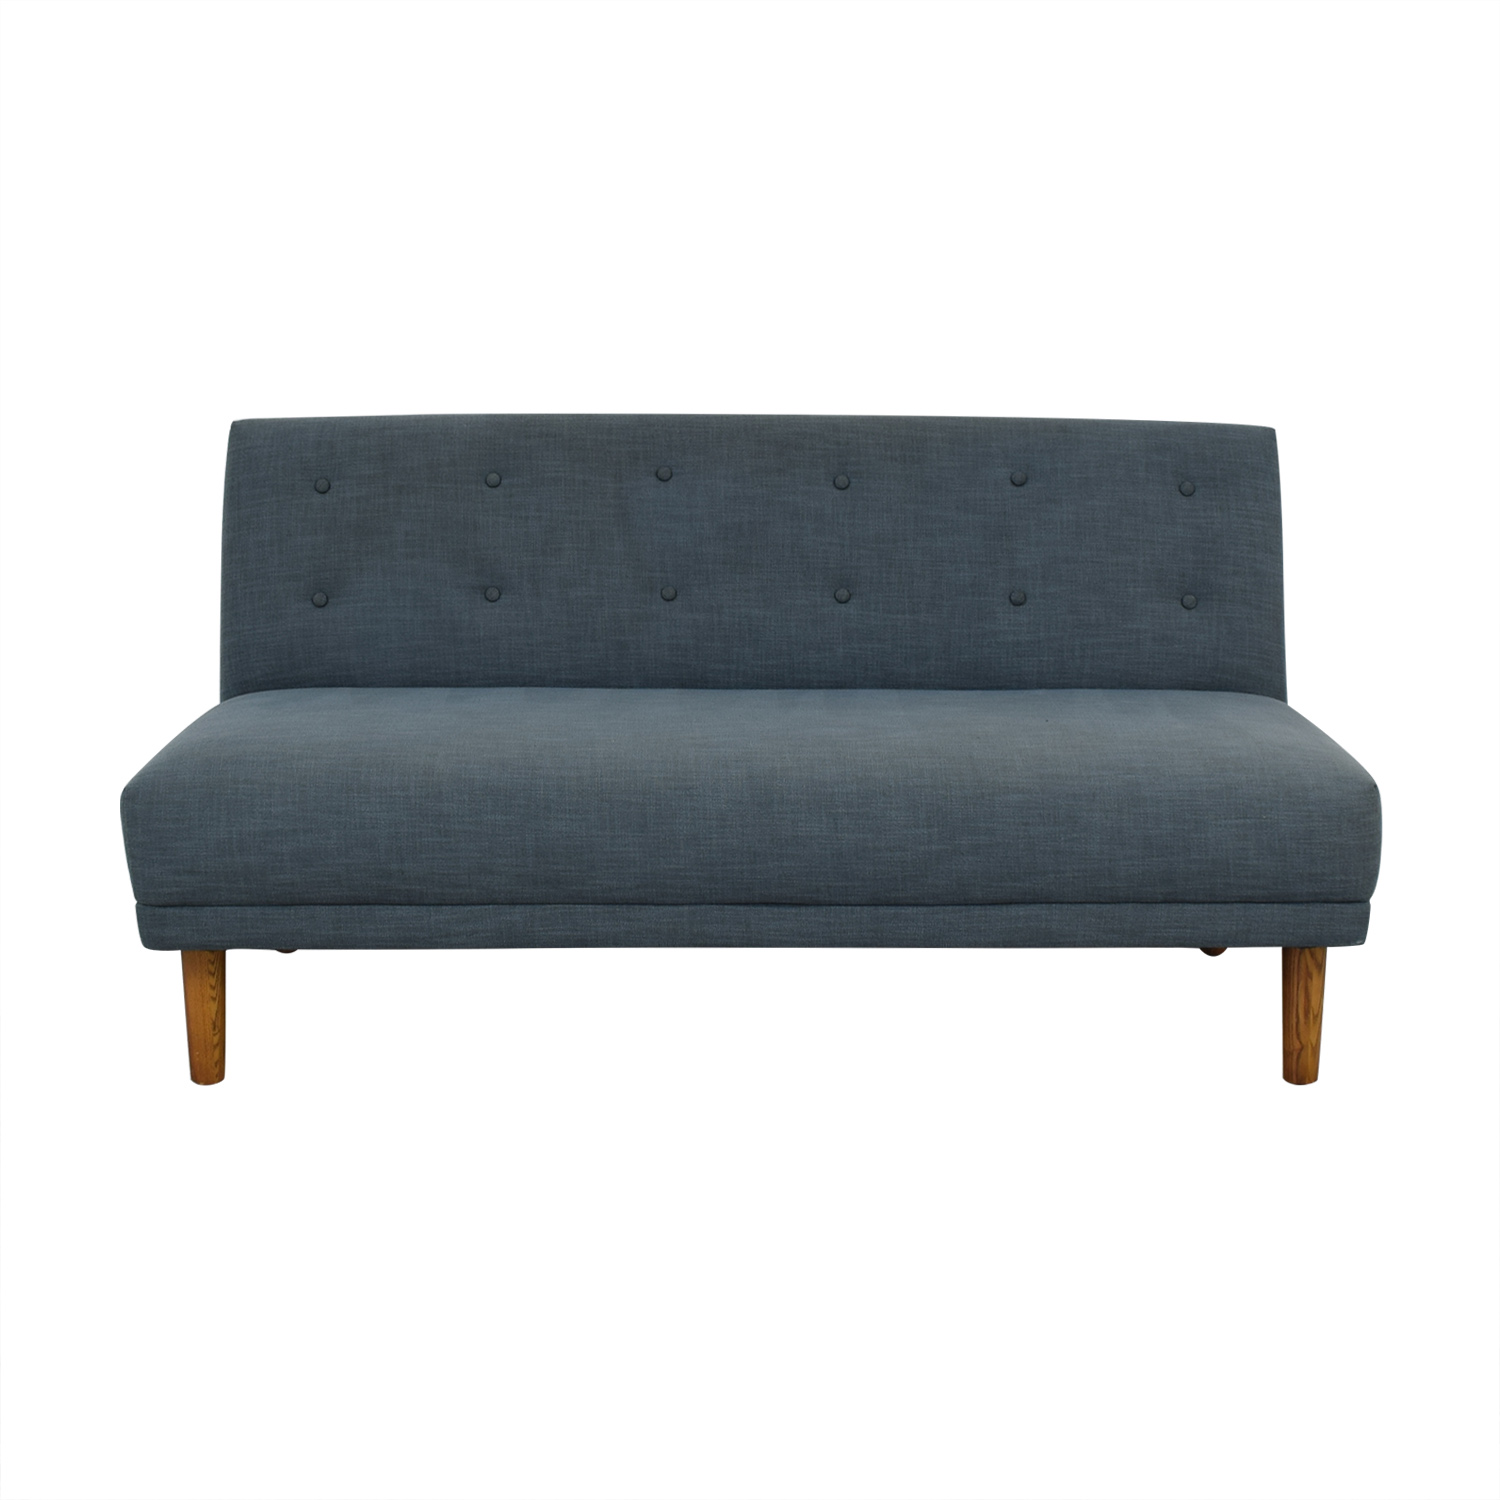 buy West Elm Retro Armless Sofa West Elm Sofas